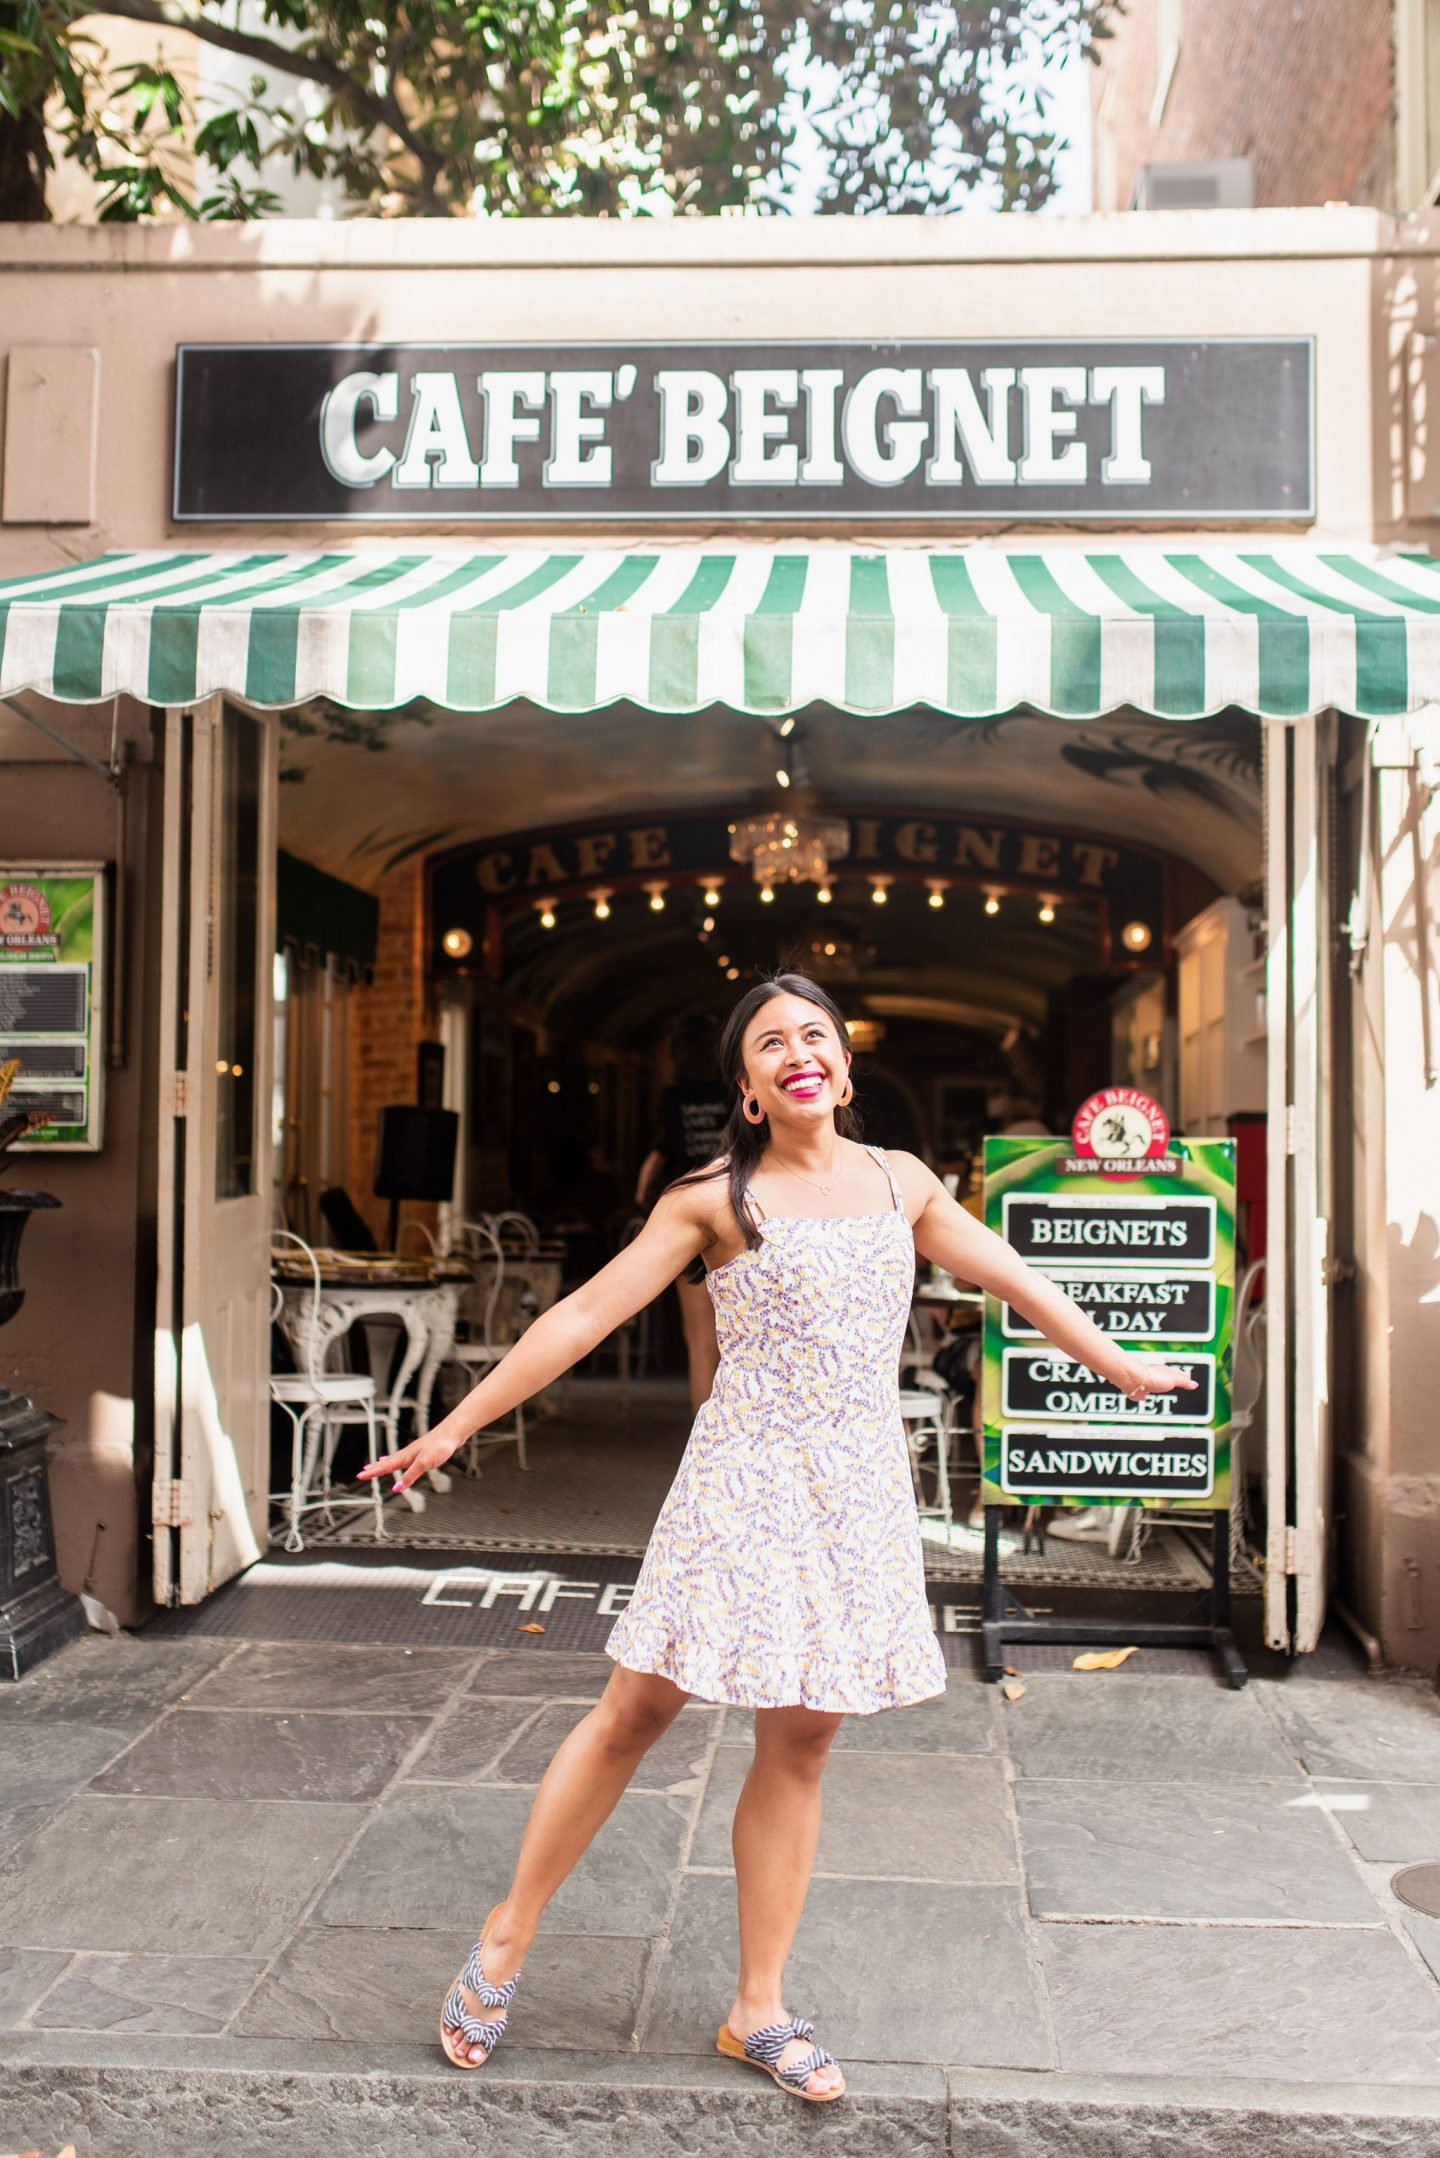 Cafe Beignet - French Quarter - best photo spots in New Orleans – New Orleans street photography – Instagram worthy spots in new Orleans – NOLA Instagram spots